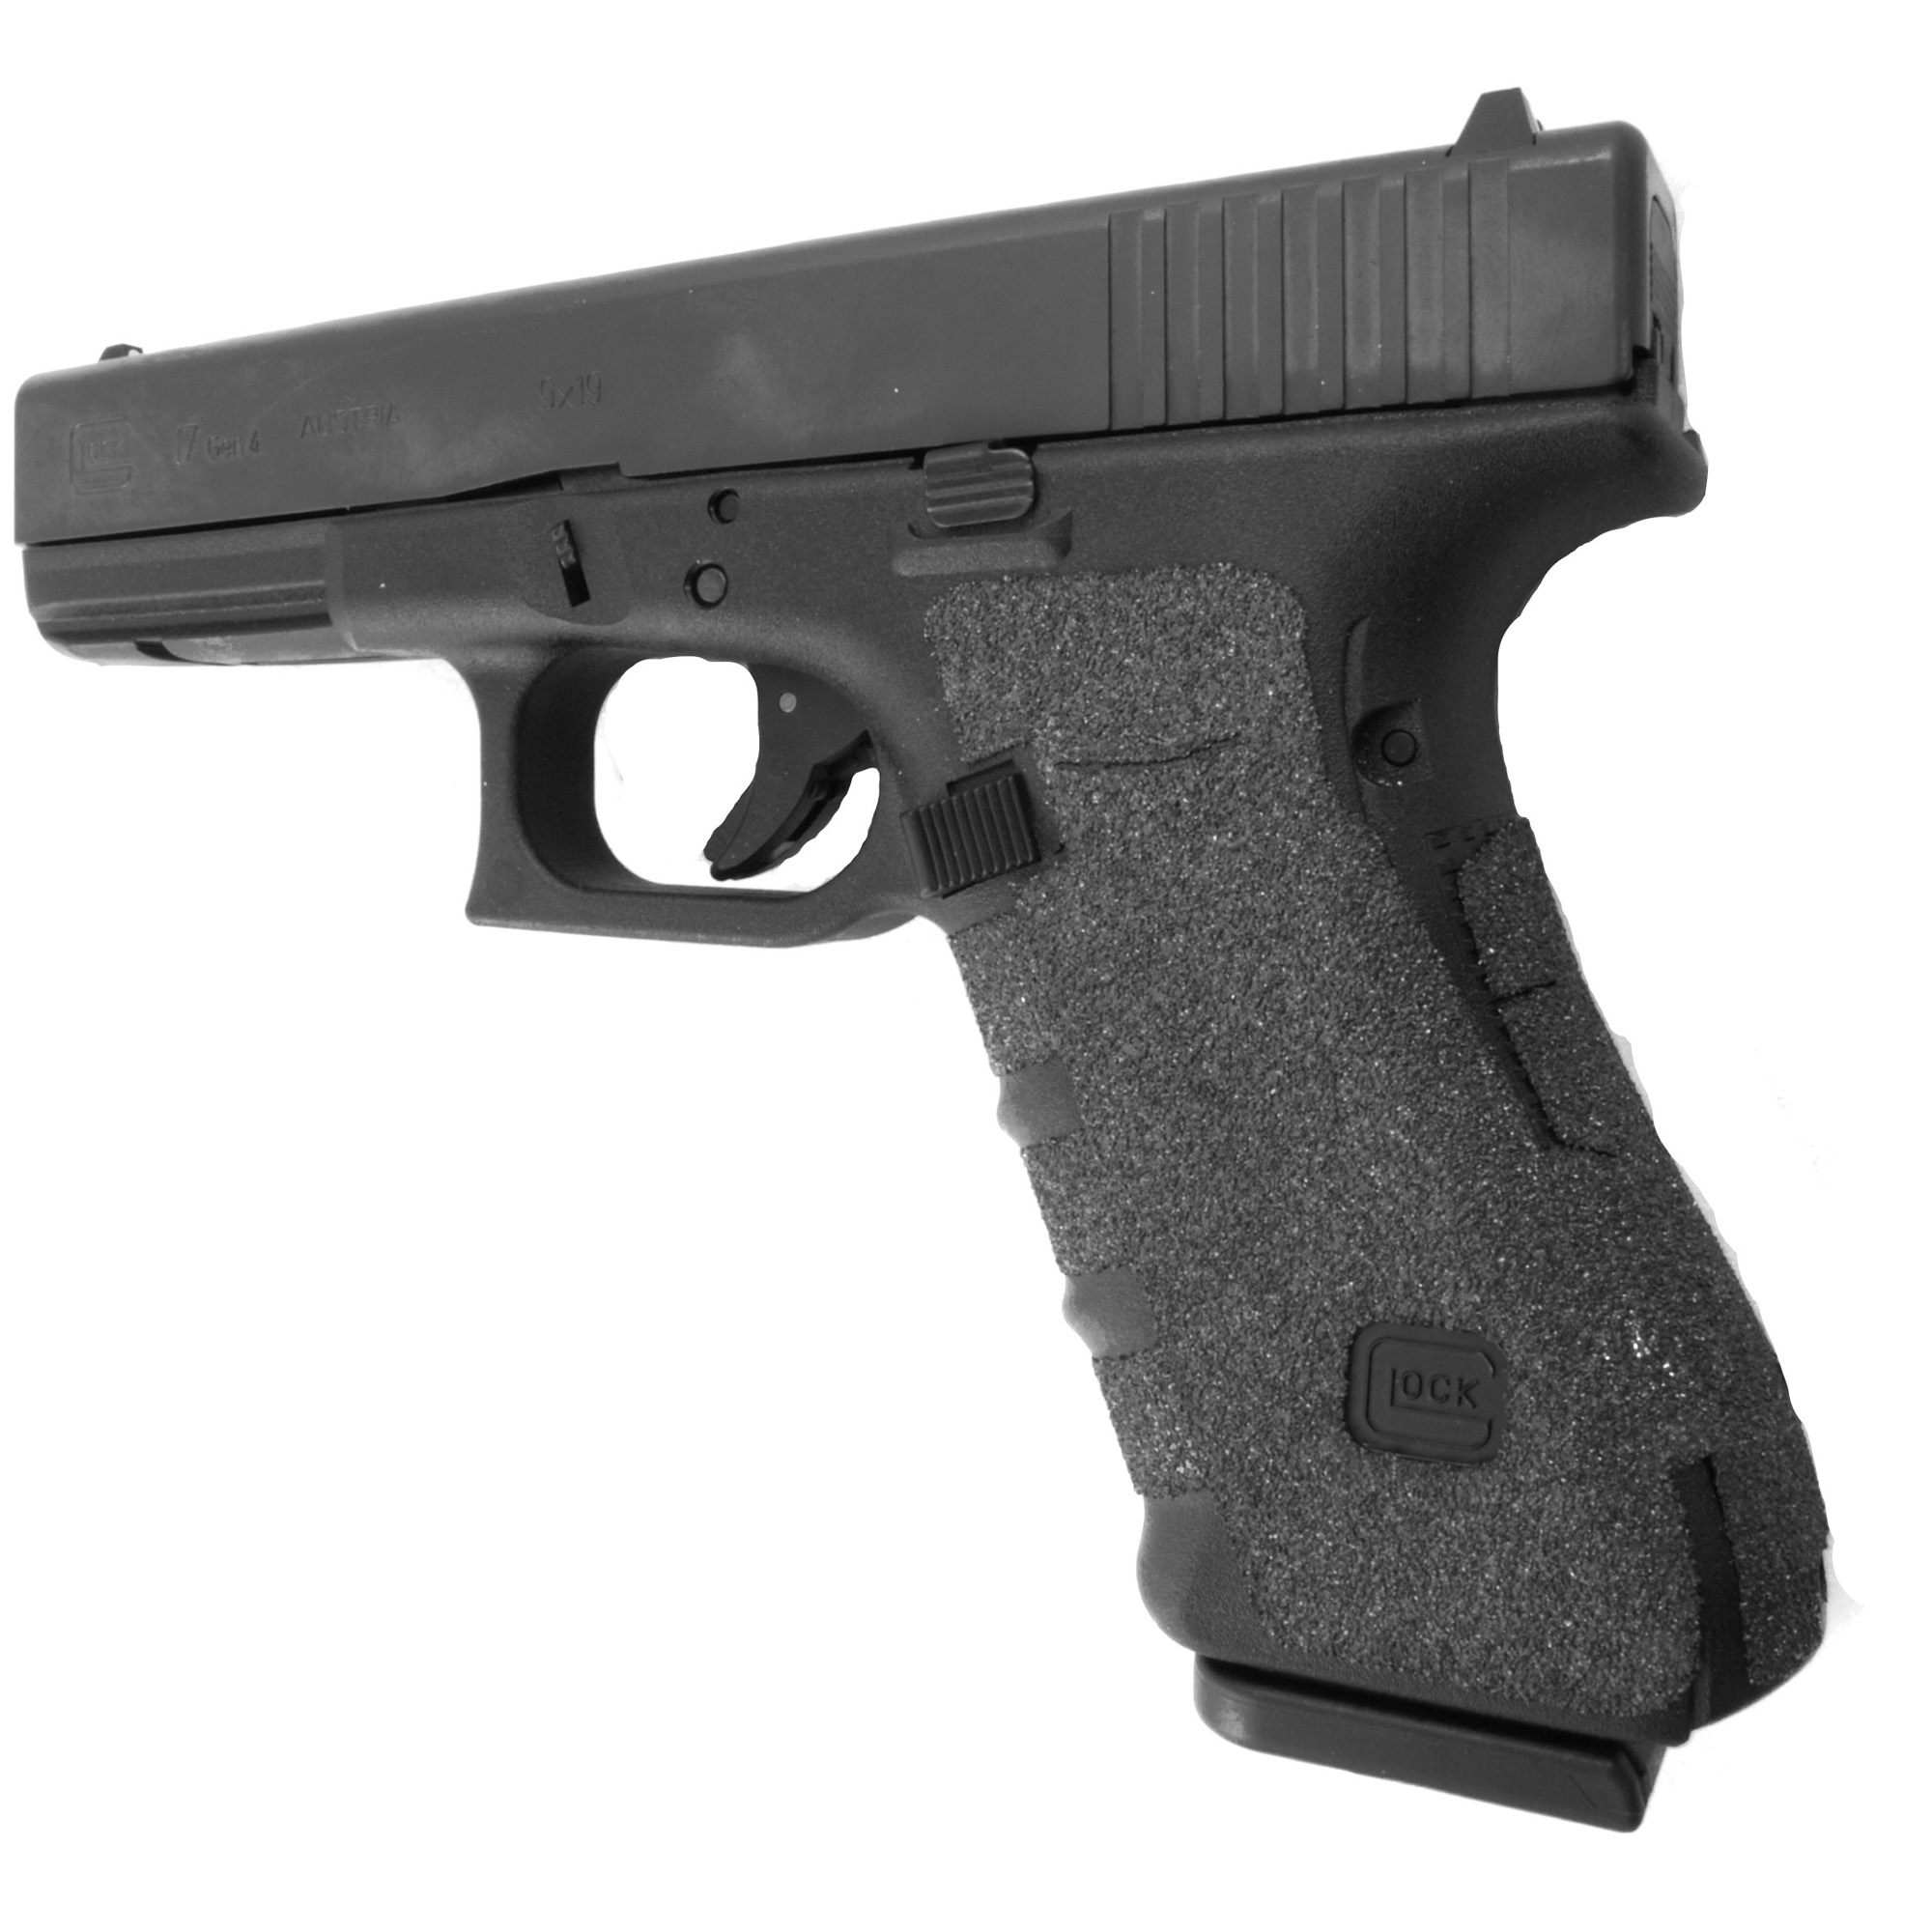 """TALON Grips for Glock Gen 4 Model 17"""" 22"""" 24"""" 31"""" 34"""" 35"""" and 37 with No Backstrap. This rear wrap grip is in the granulate texture. This grip provides full coverage on the side panels including above the thumb rest"""" ample coverage on the backstrap"""" and three finger wraps for the finger groves under the trigger guard. This grip has a logo cutout for the Glock emblem on the left side of the handle. This grip sticks extremely well even with the Rough Textured Frame (RTF)."""